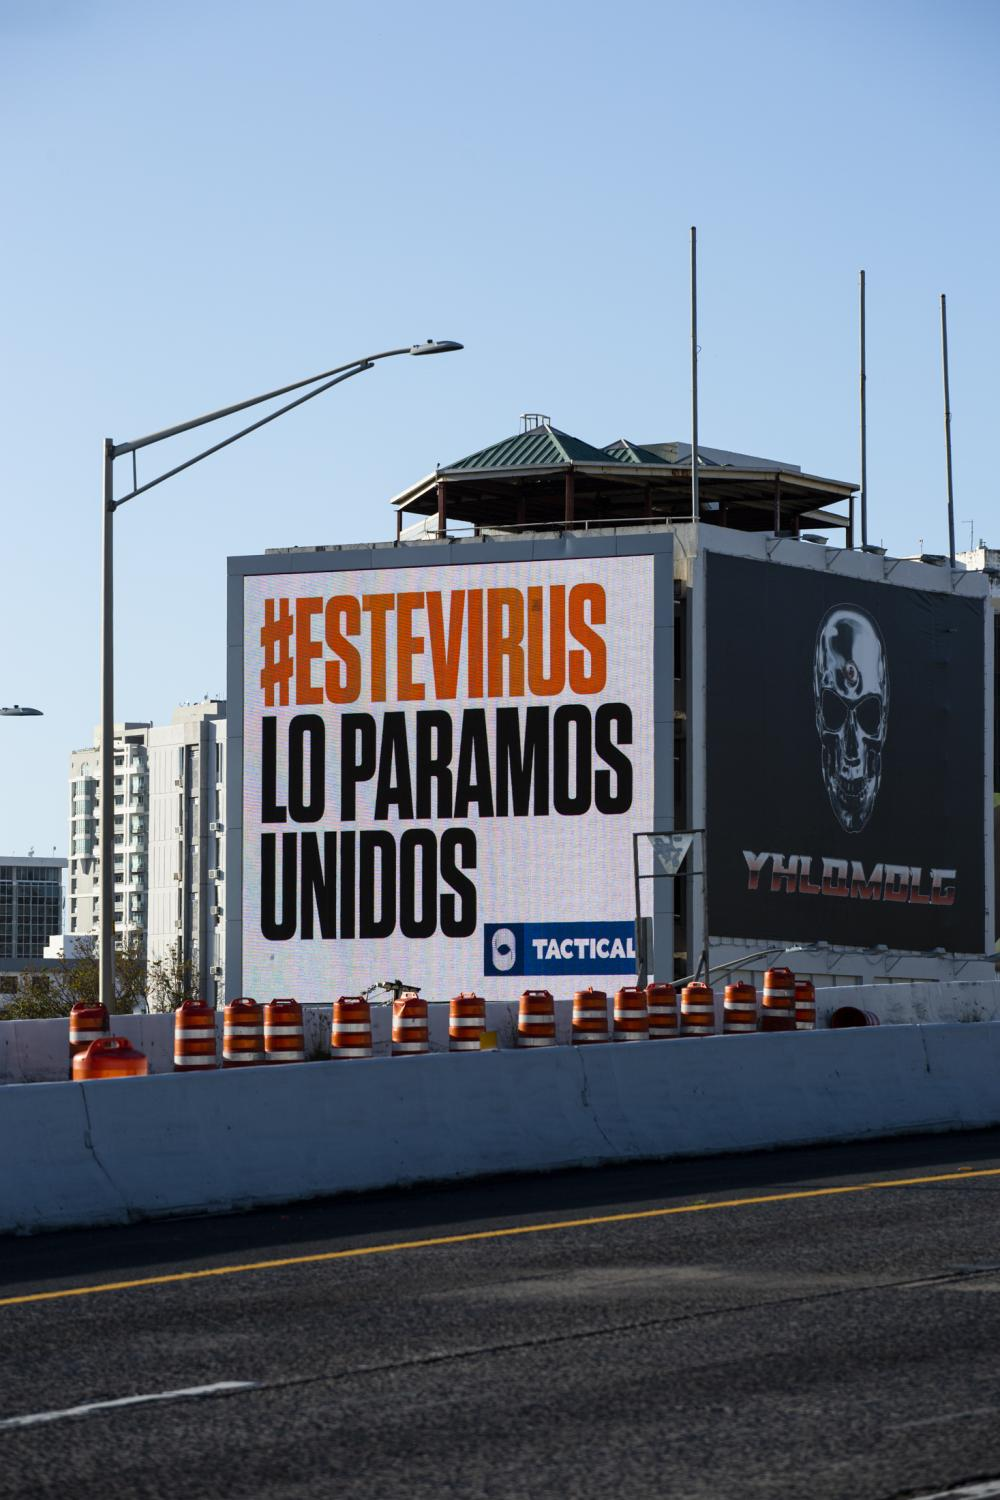 A billboard seen form the highway in Santurce displays the message 'we stop this virus together' (este virus lo paramos unidos) on April 19, 2020, in San Juan, P.R. The island has been under lockdown for COVID-19 since March 15 under some of the strictest measures in the U.S. territory, and has the lowest amount of testing per capita. (Erika P. Rodriguez for The New York Times)